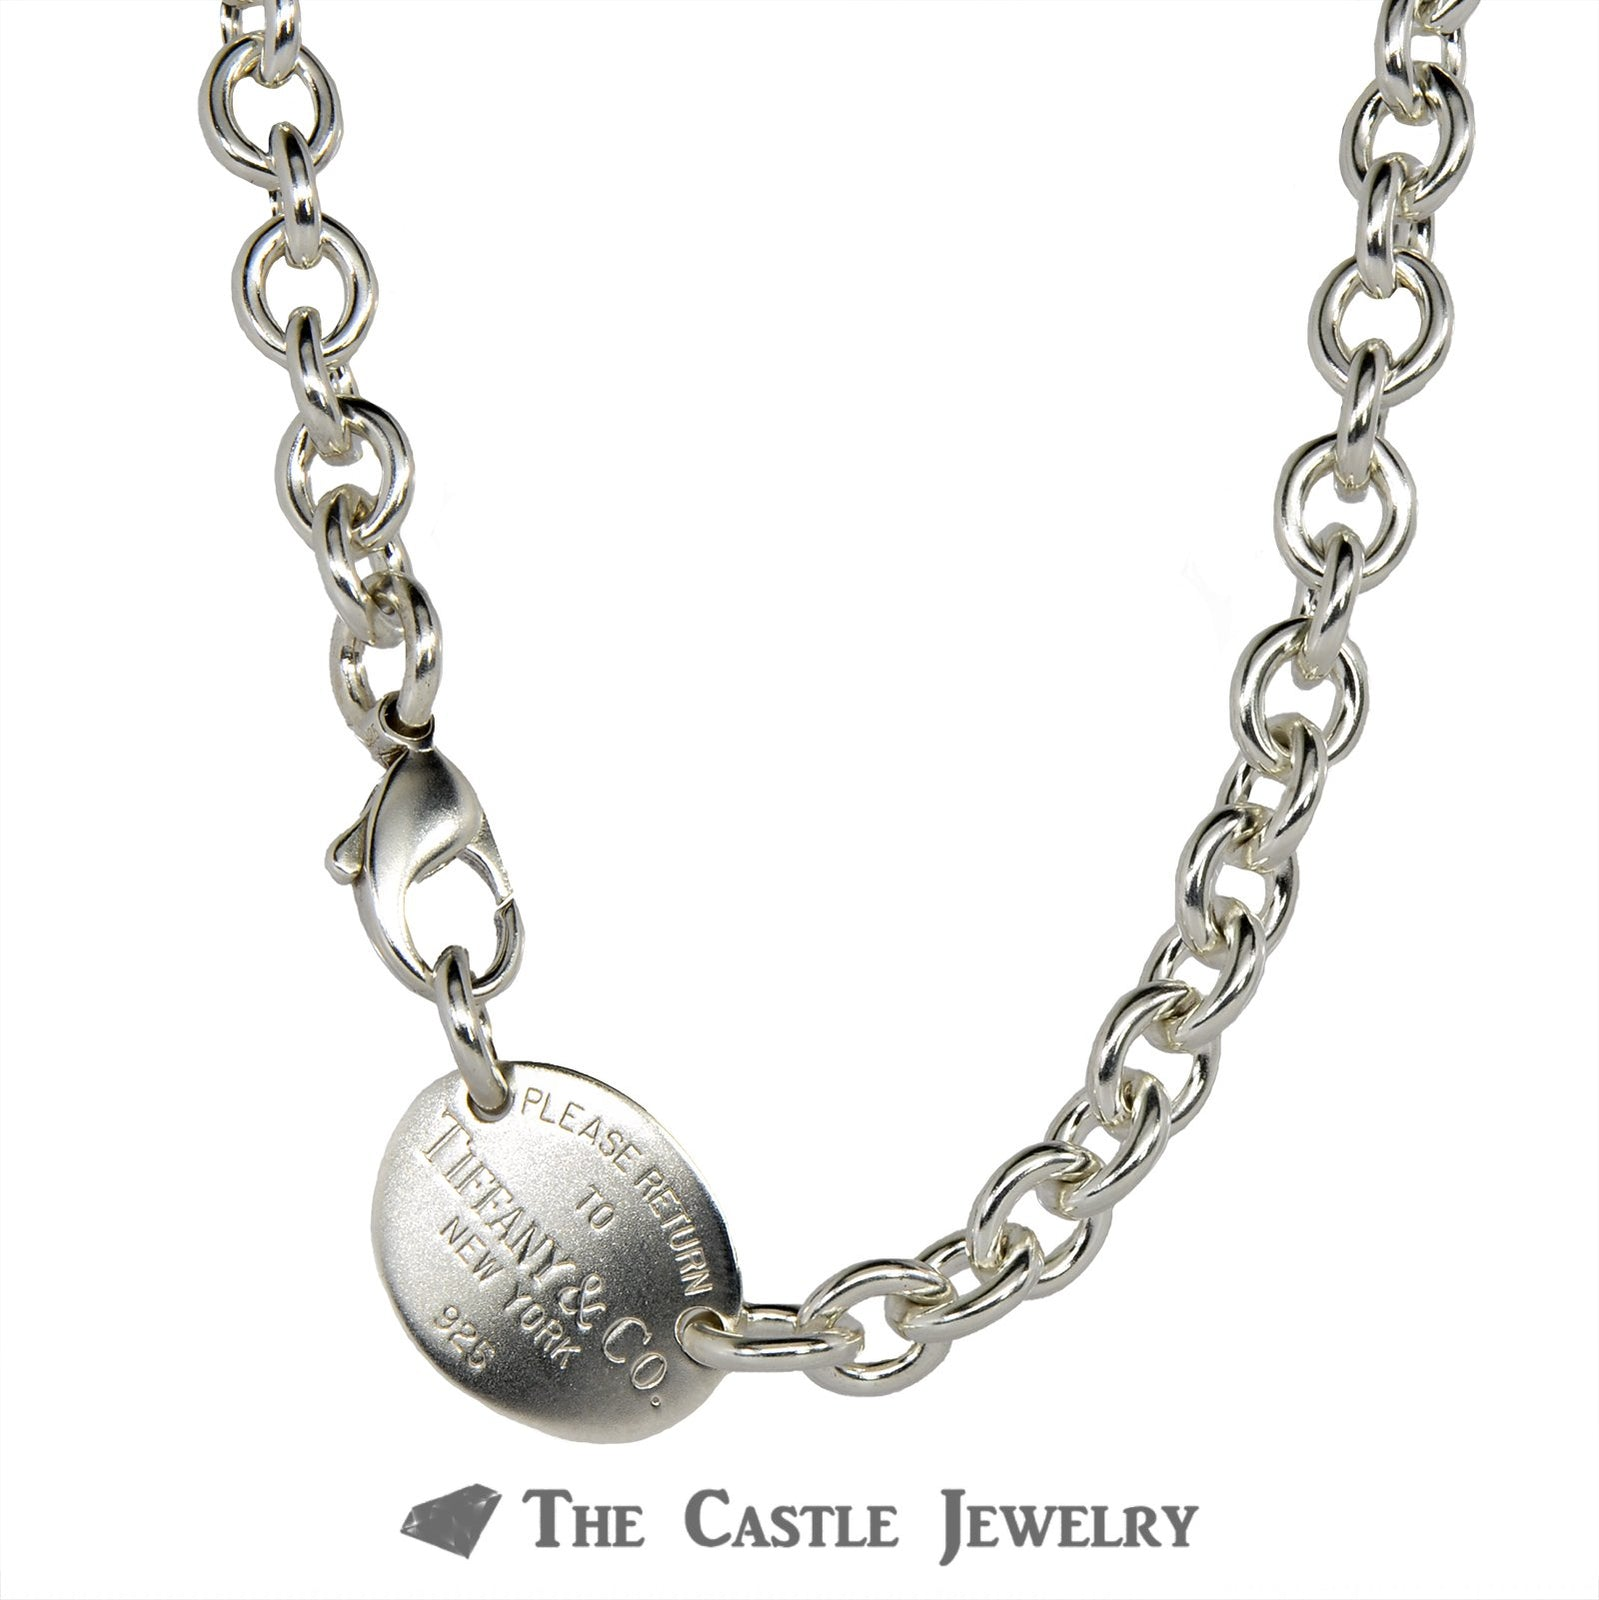 Tiffany & Co. Jewelry – Oval Return to Tiffany Cable Necklace in Sterling Silver